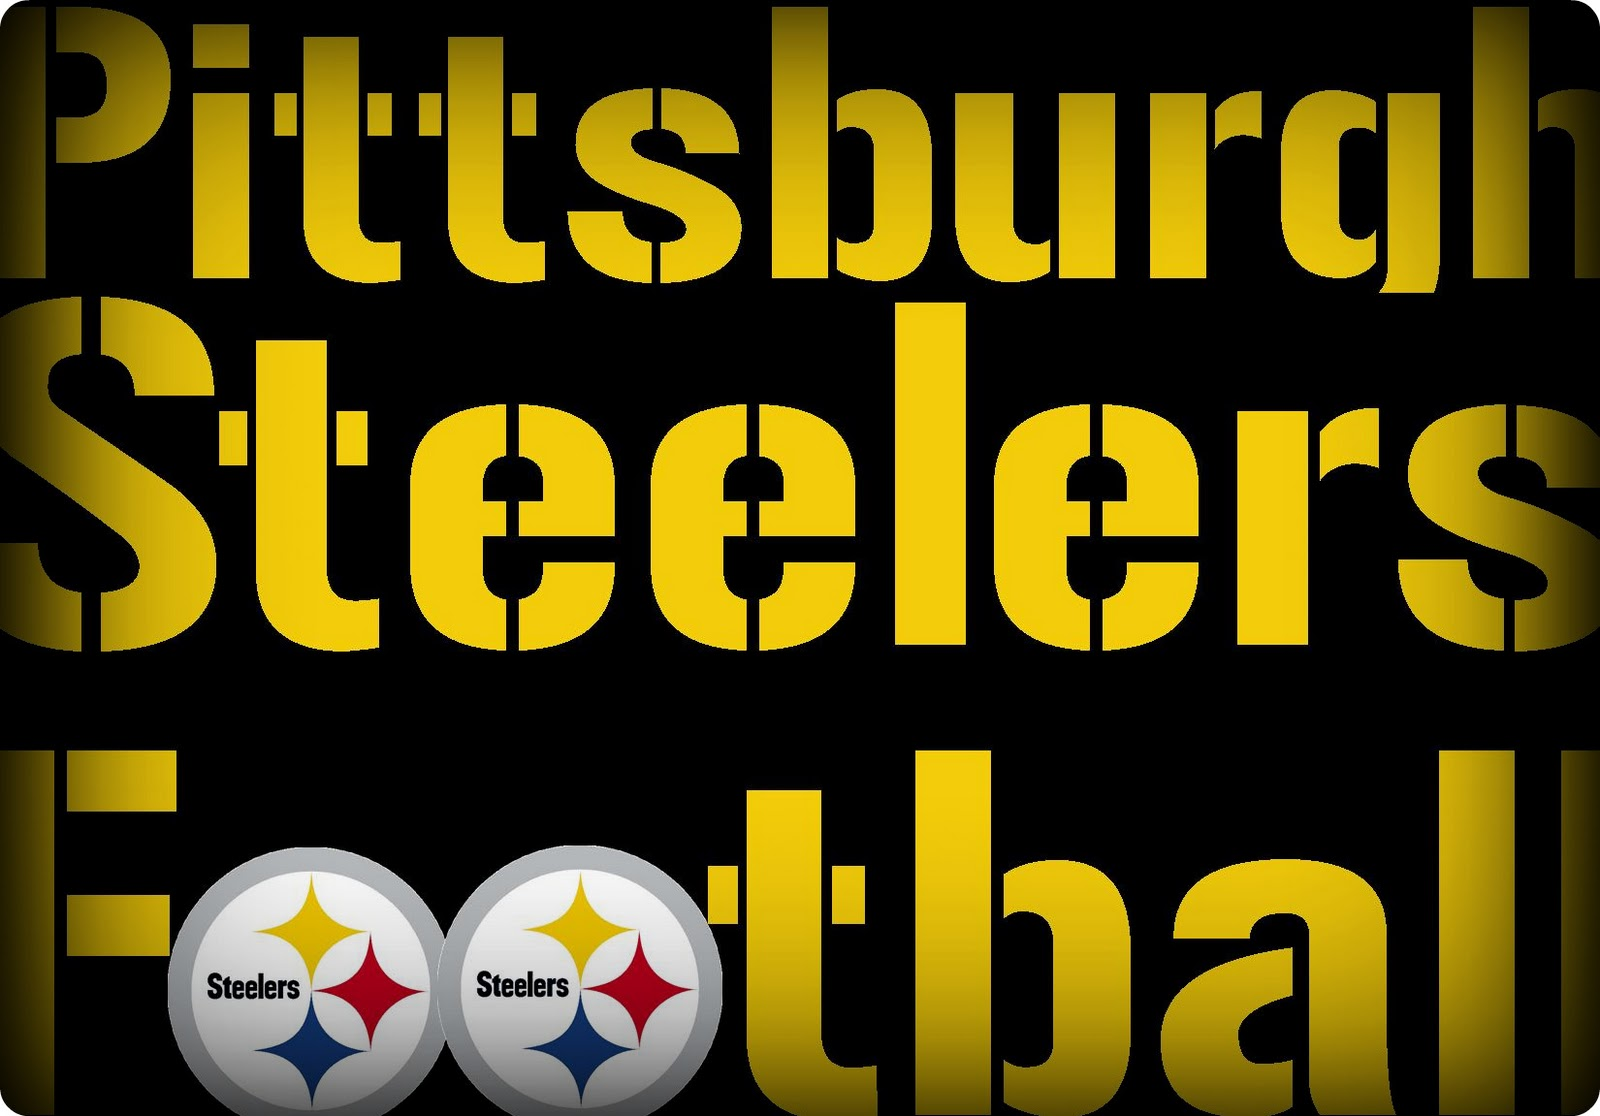 http://3.bp.blogspot.com/_ZMu3qQSmz6I/TULJ7jcSNII/AAAAAAAAHCQ/SIzgjptqOMg/s1600/pittsburgh_steelers_football_enhanced.jpg